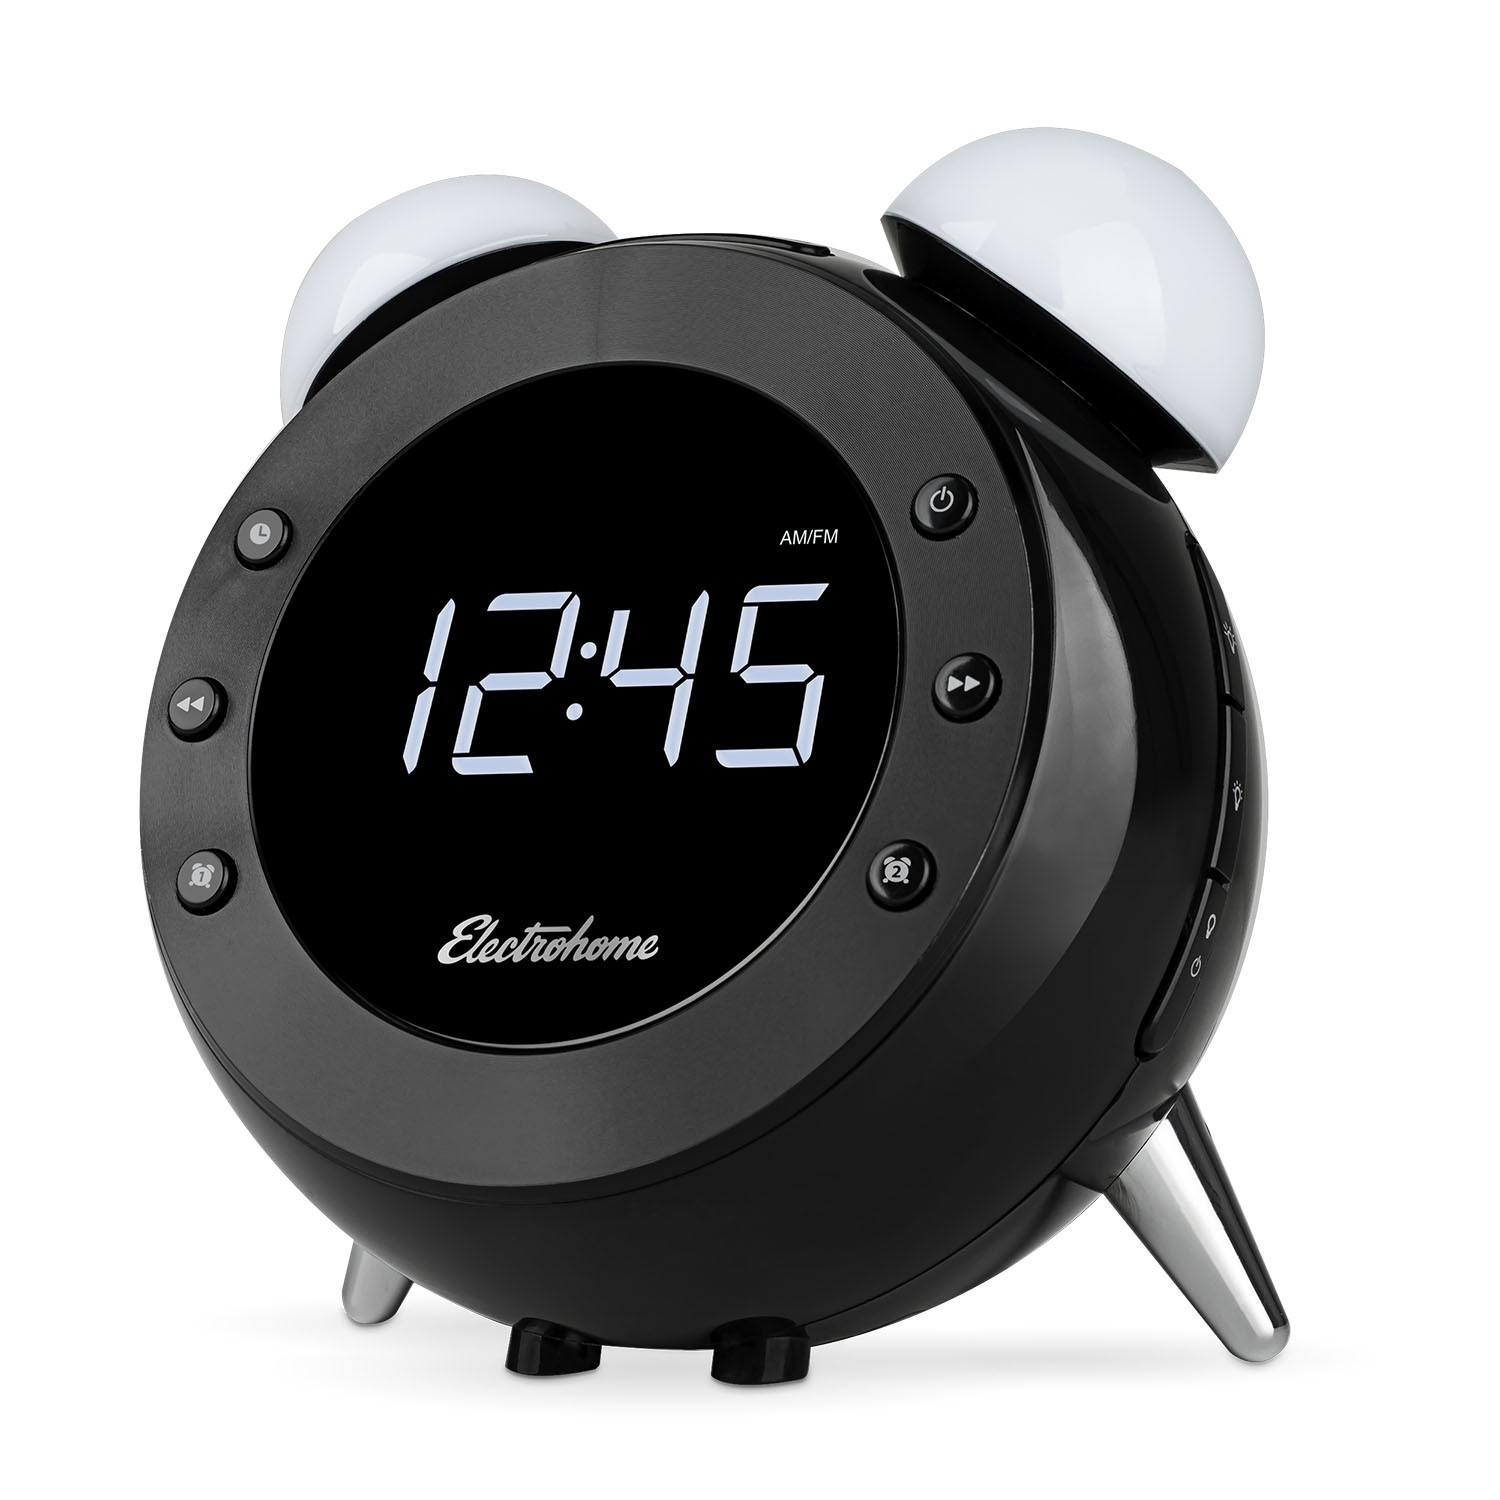 Retro Alarm Clock Radio With Motion Activated Night Light And Snooze